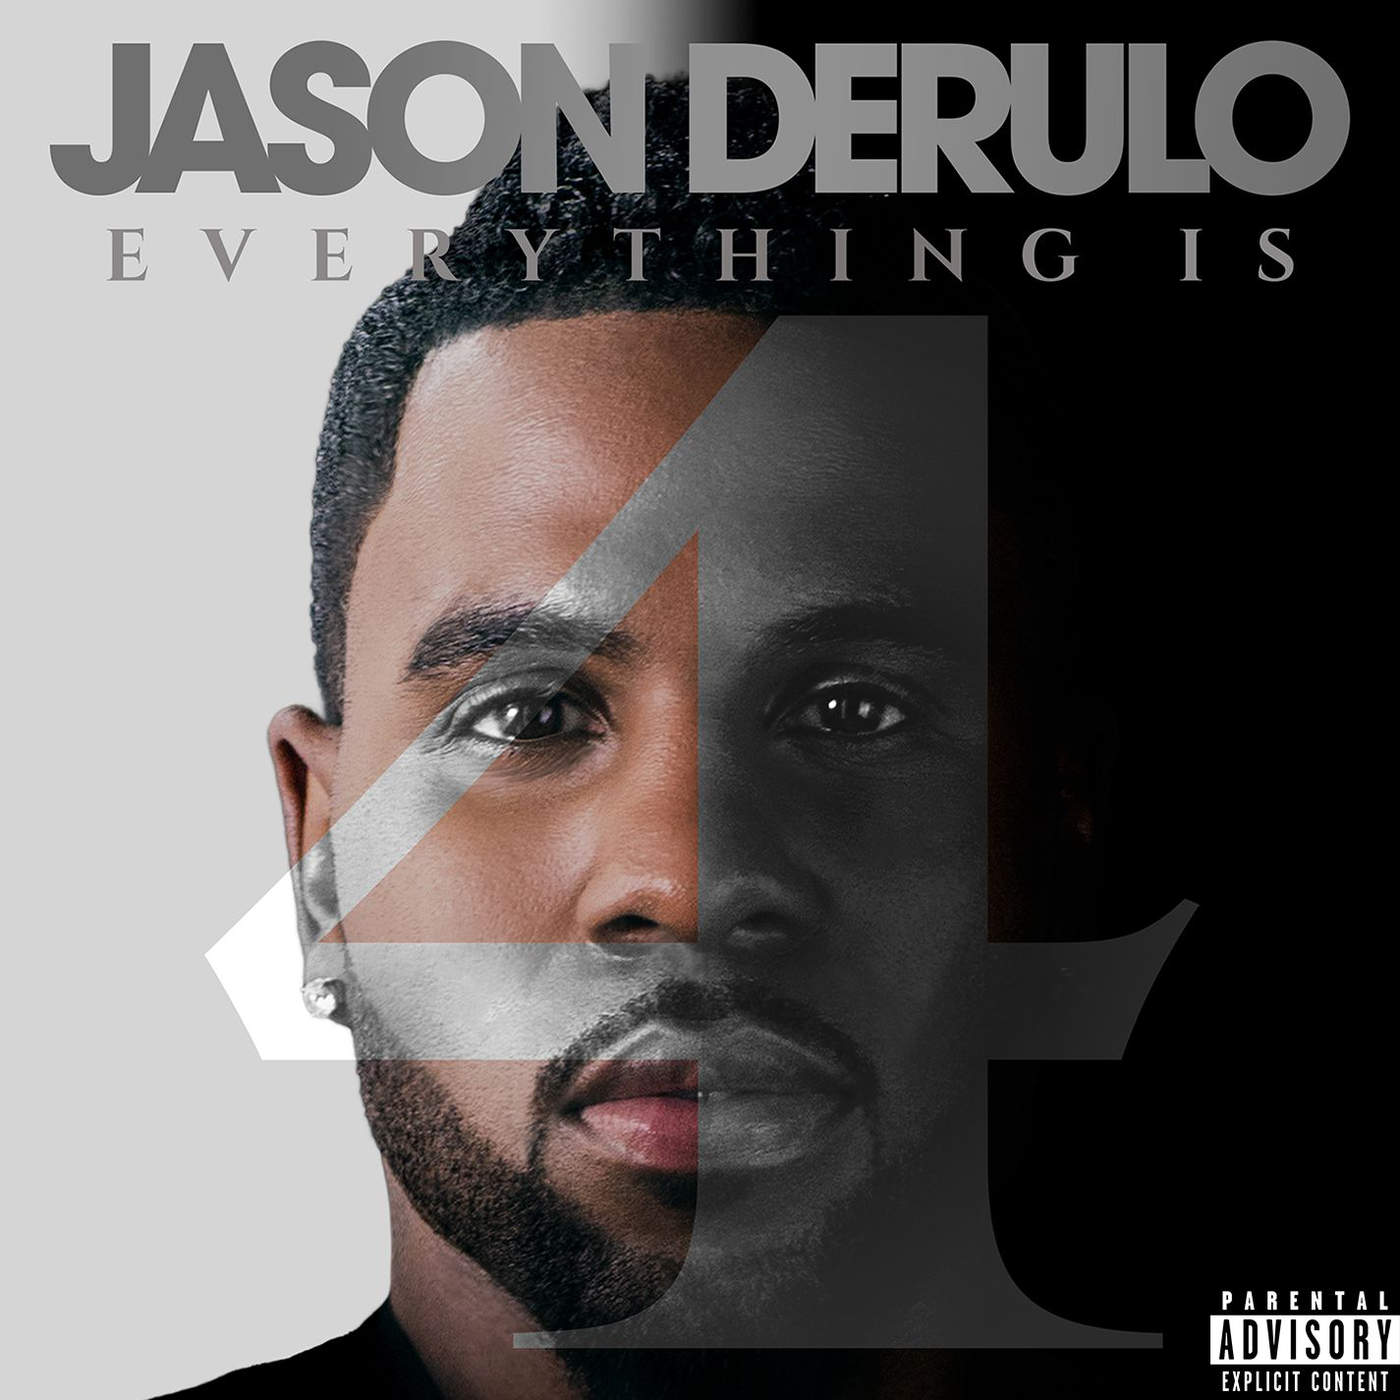 Jason Derulo - Everything Is 4 Cover